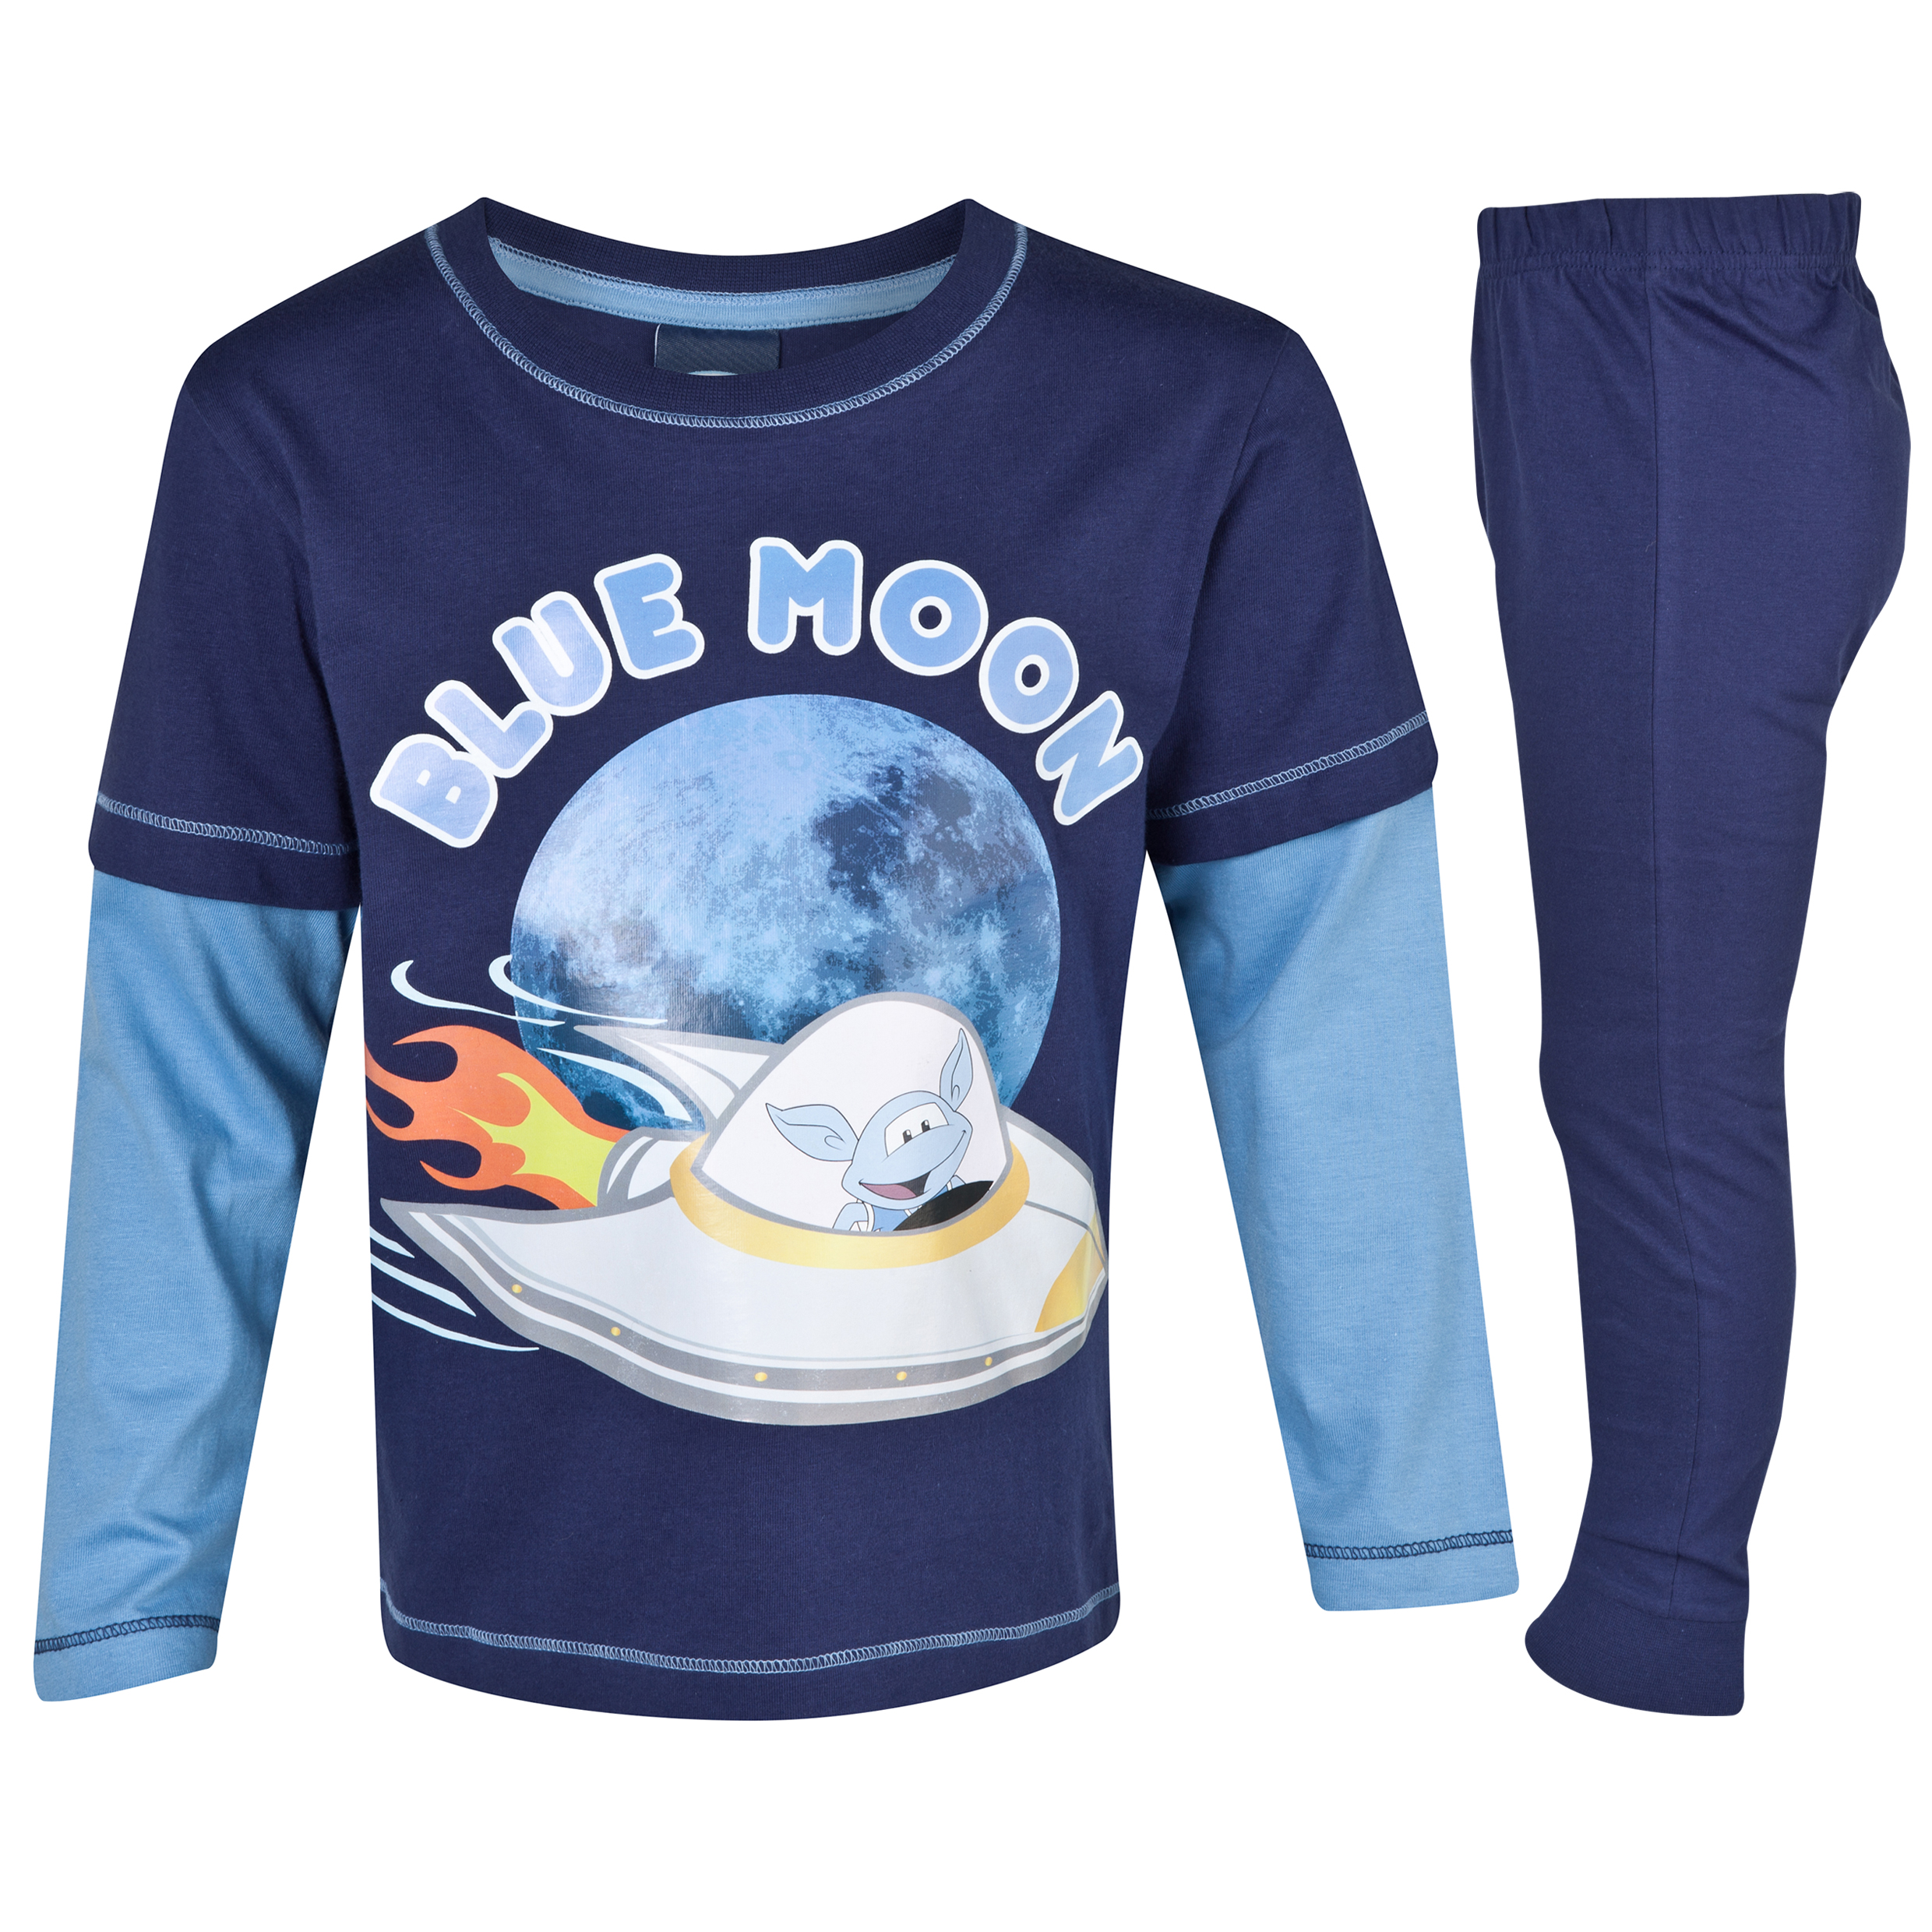 Manchester City Blue Moon Pyjama Infant Boys Navy